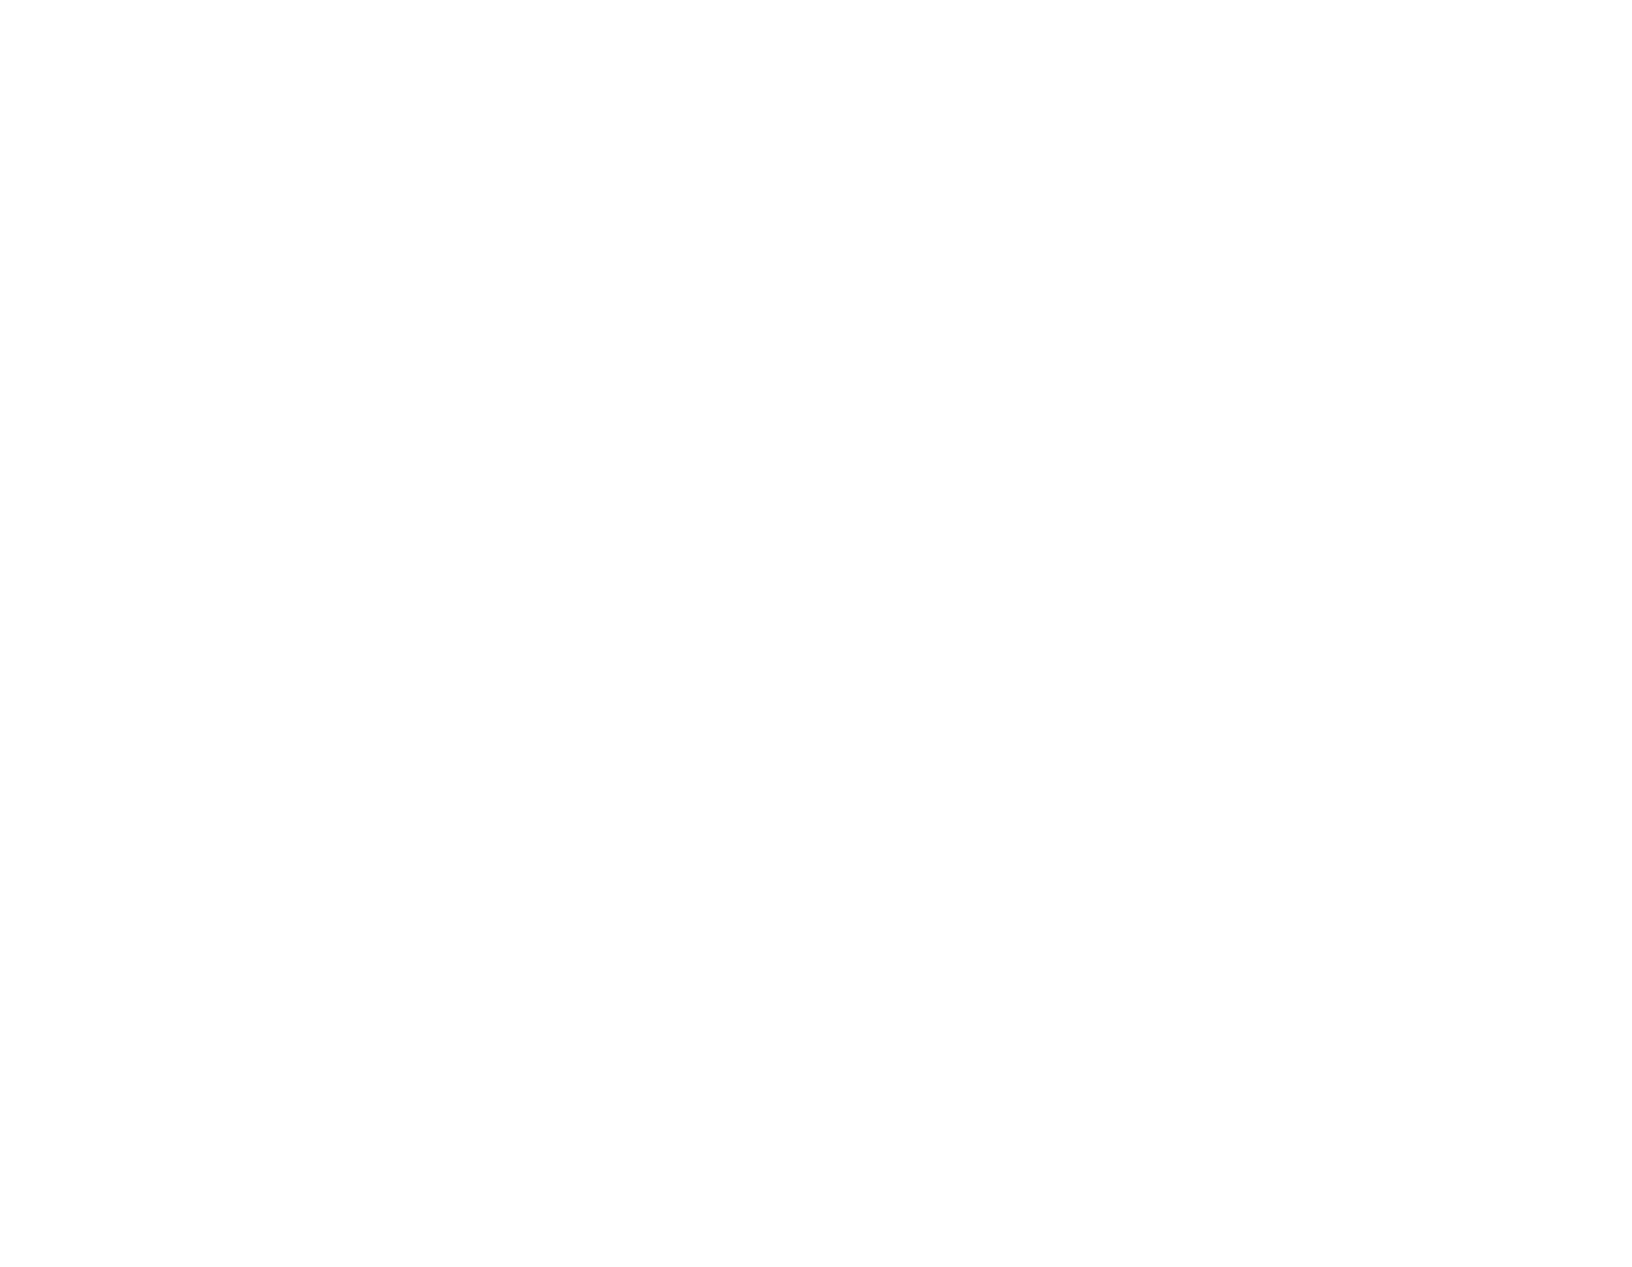 Providence Hill Real Estate